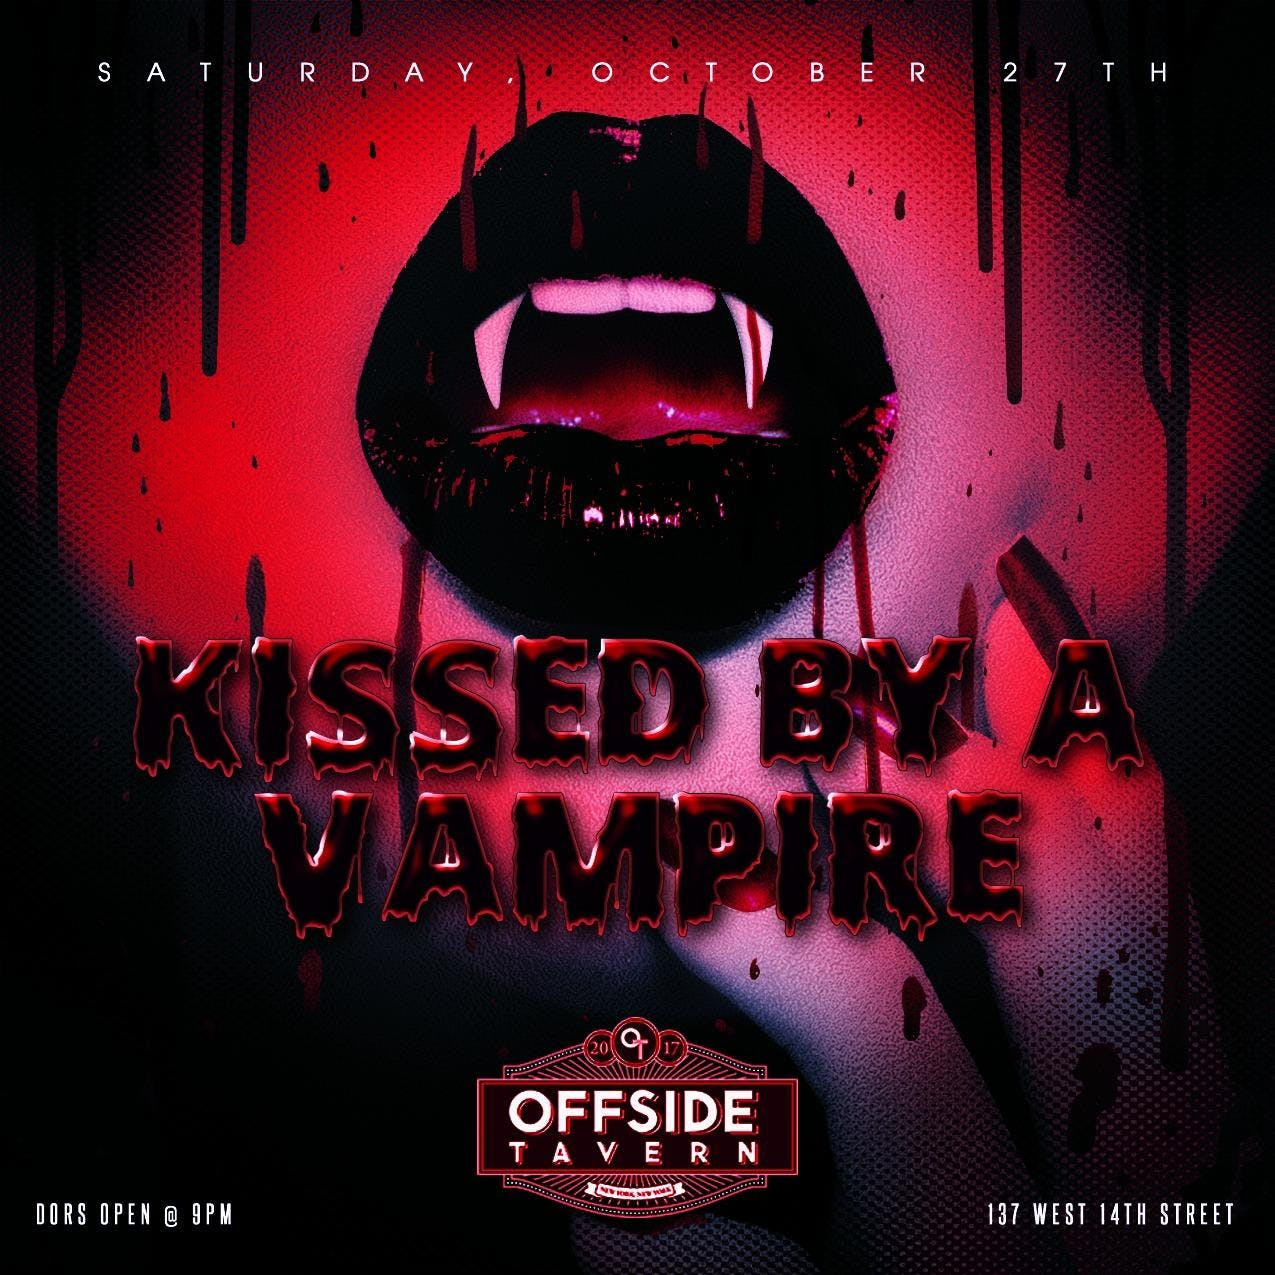 Kissed by a Vampire Halloween Party at Offsid